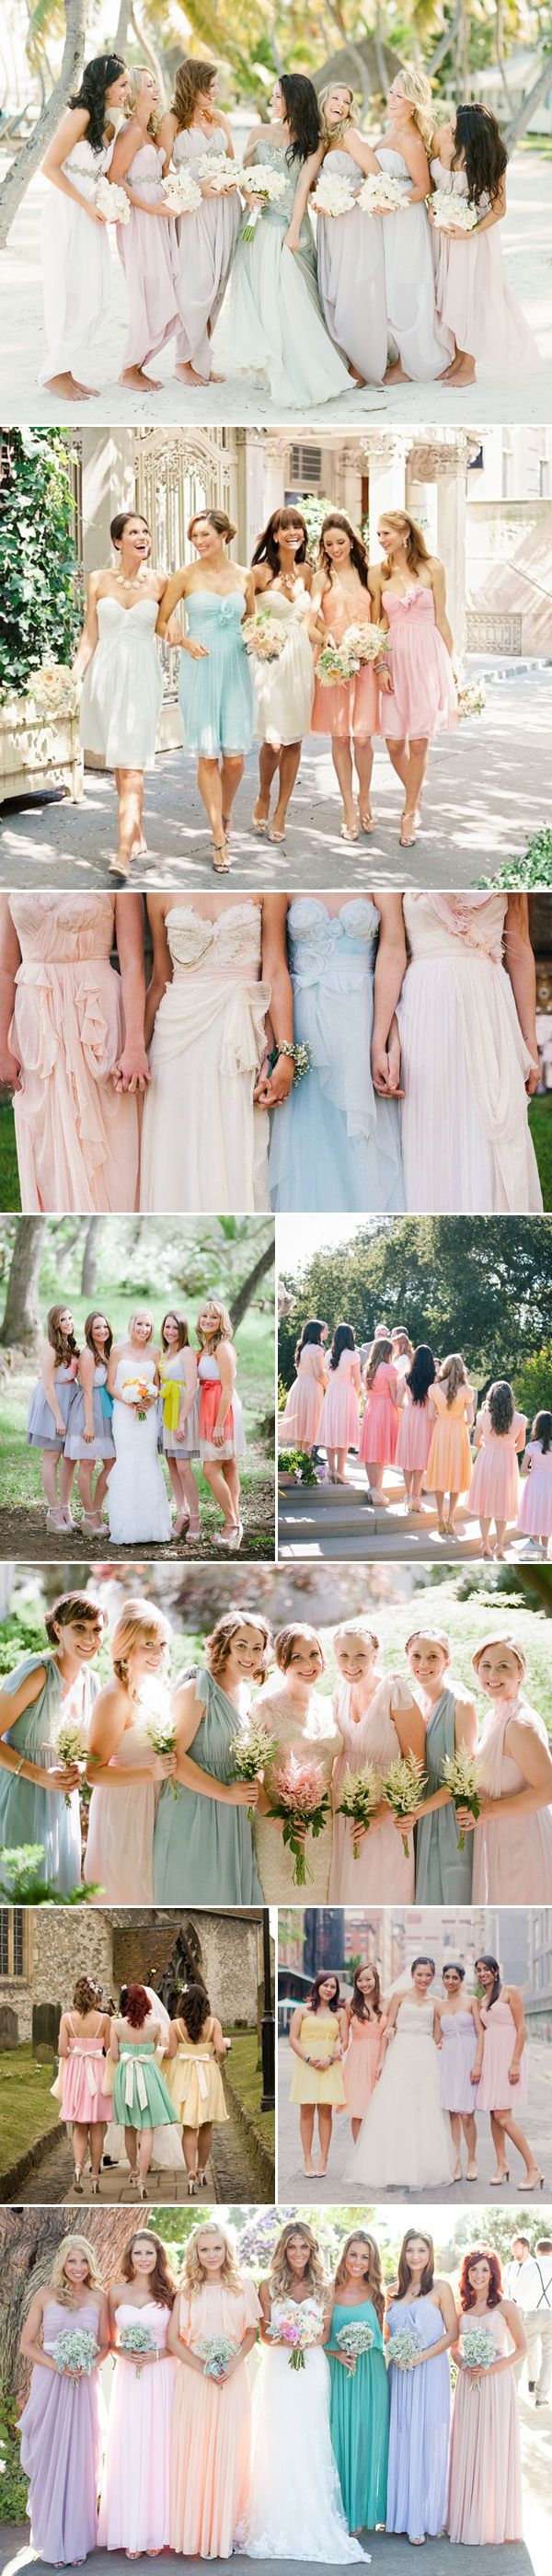 Pastel Mismatched Bridesmaid Dresses - Different Color, same or similar styles